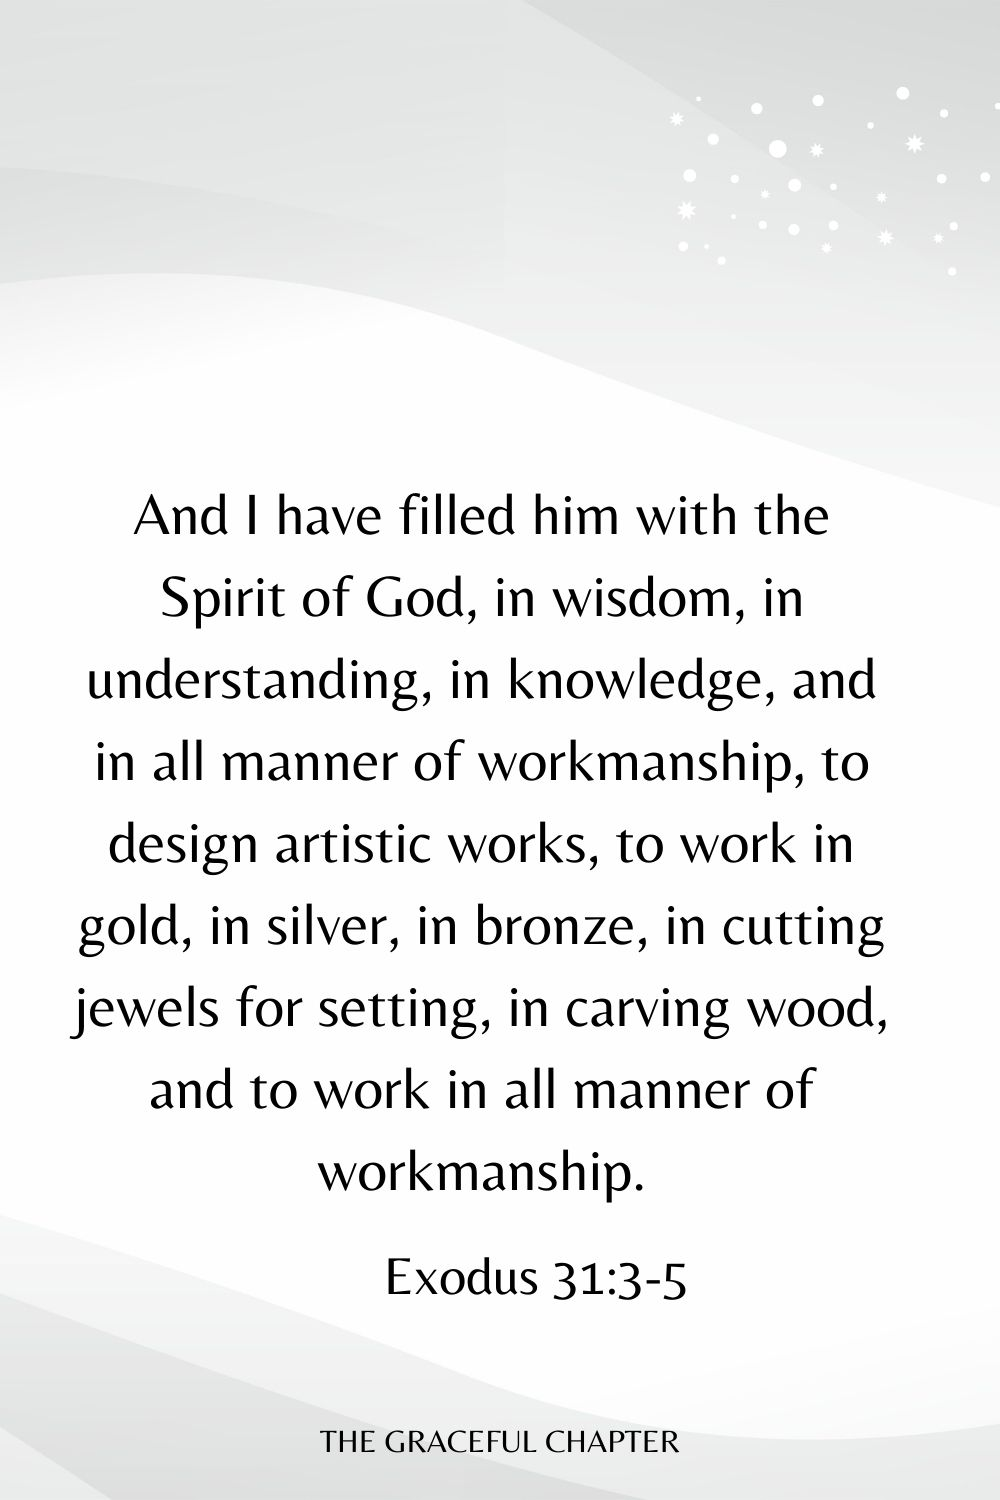 And I have filled him with the Spirit of God, in wisdom, in understanding, in knowledge, and in all manner of workmanship, to design artistic works, to work in gold, in silver, in bronze, in cutting jewels for setting, in carving wood, and to work in all manner of workmanship. Exodus 31:3-5